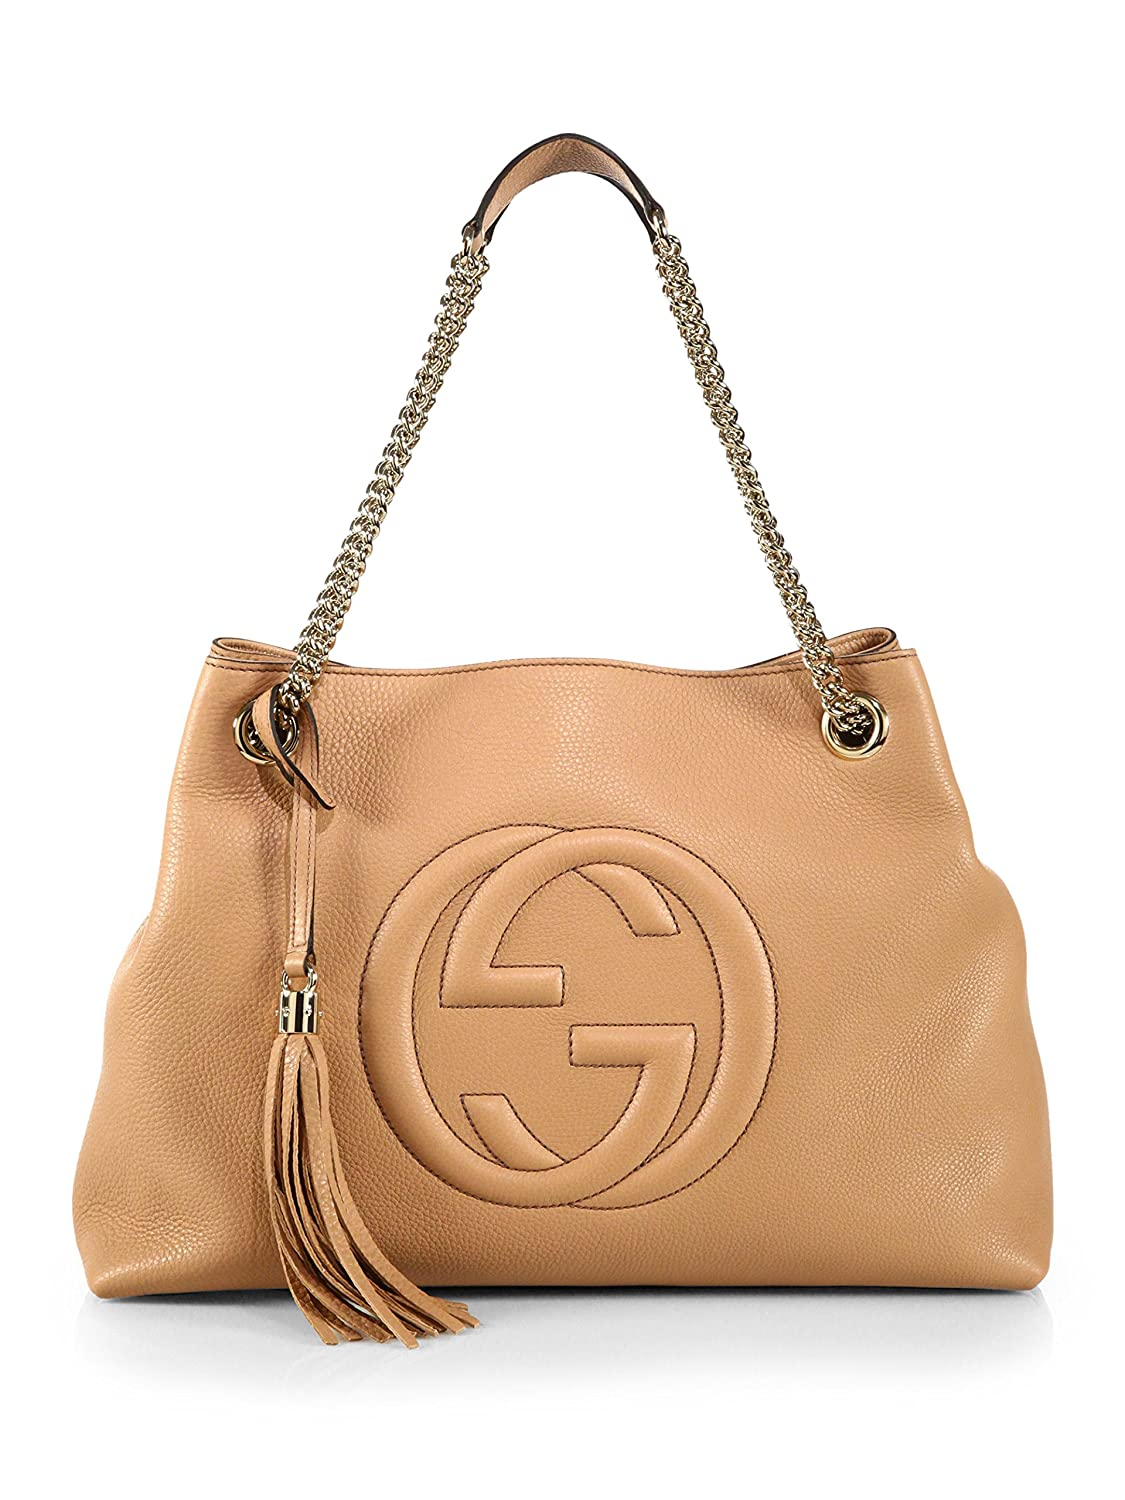 8e2a7c24165 Gucci Camelia Soho Med Shoulder Bag Leather Soft Classic Handbag Italy New  Leather Natural cotton linen lining